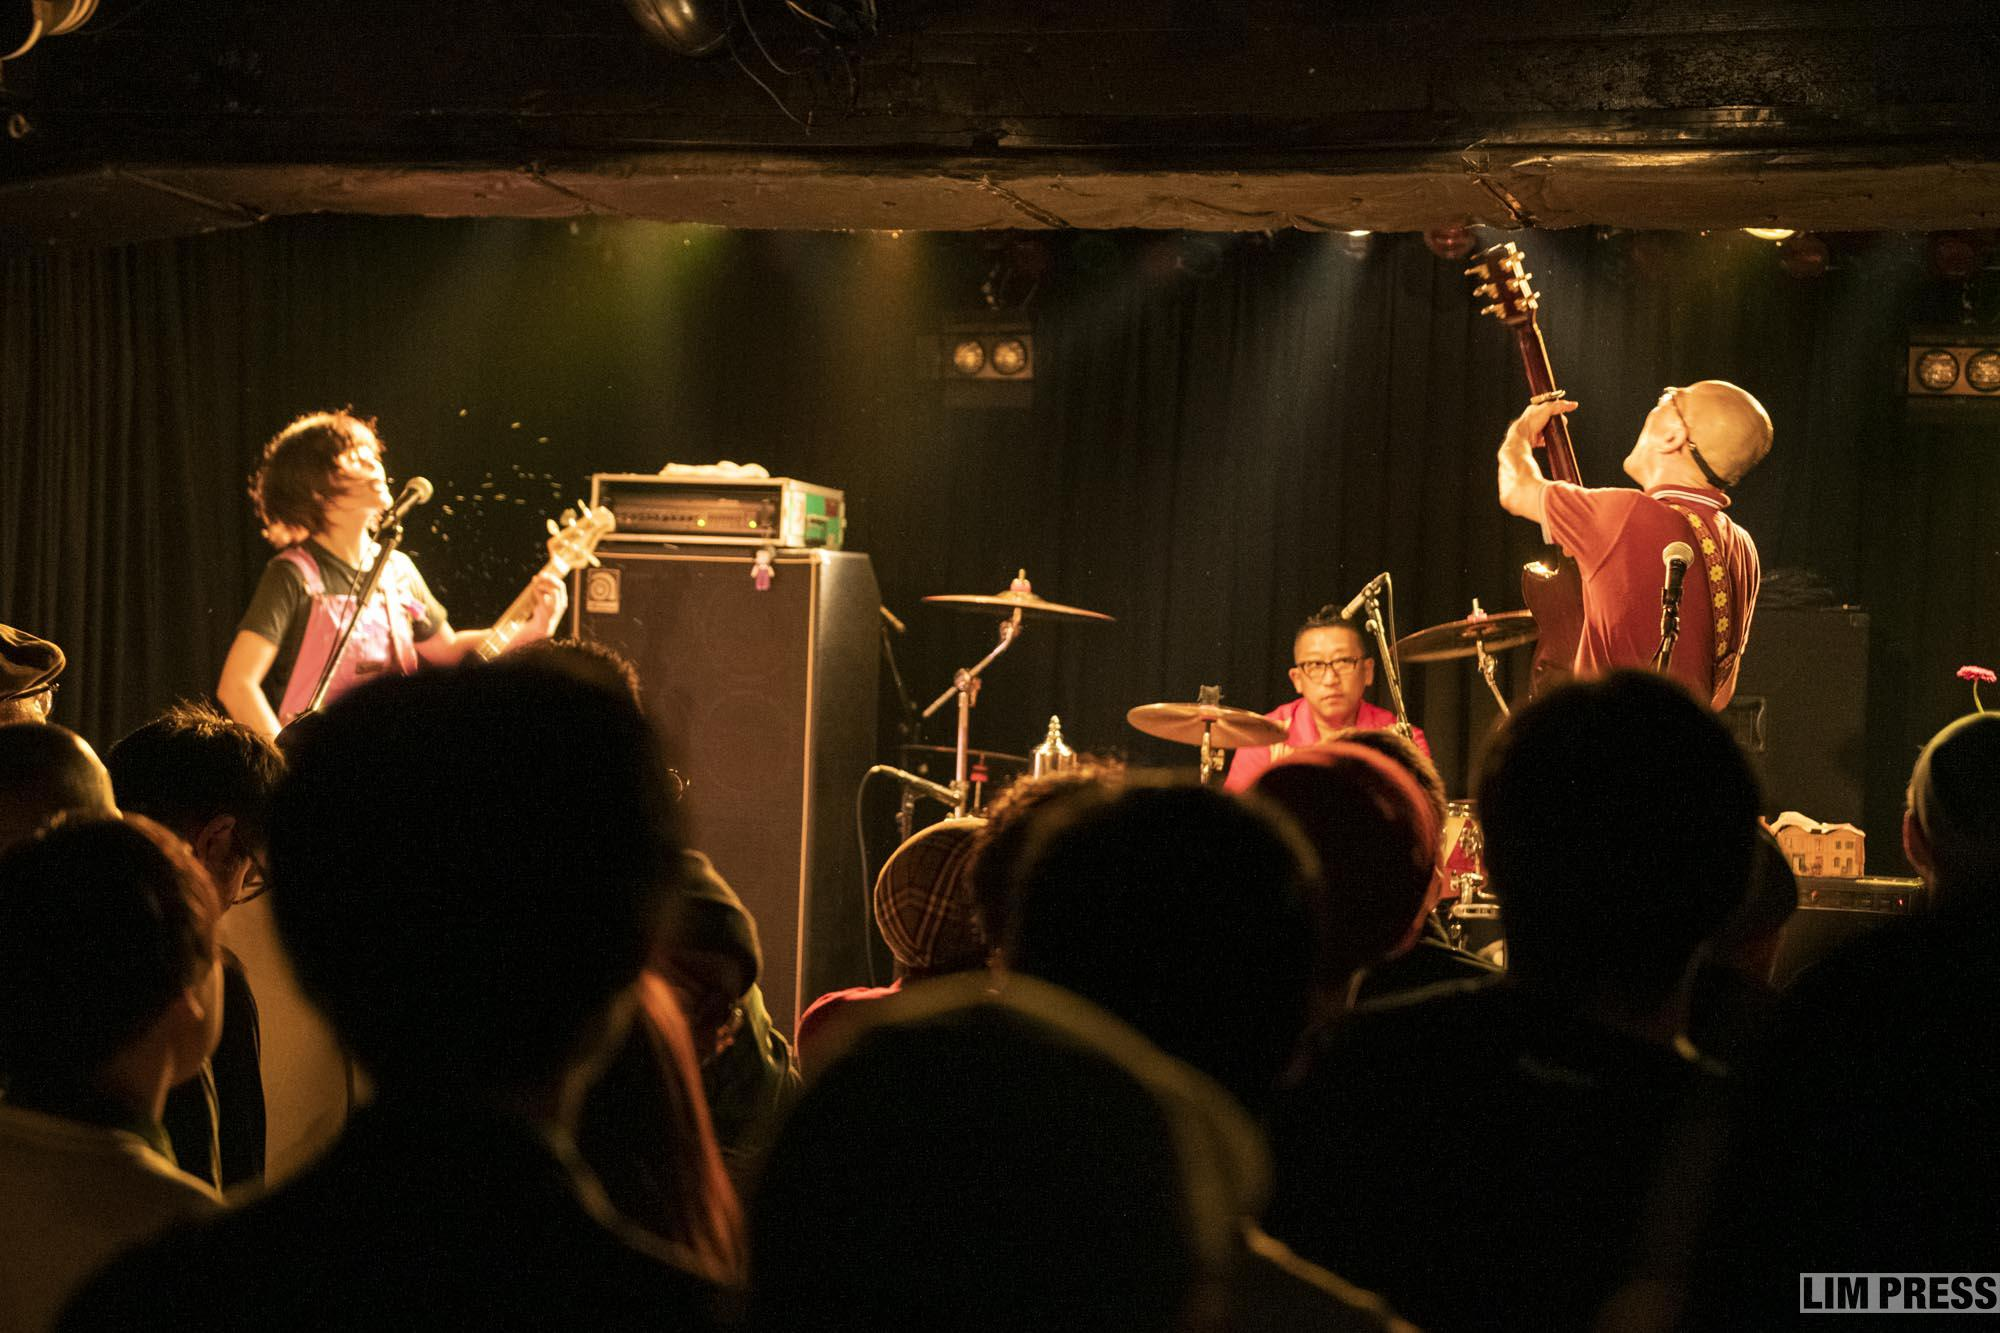 eastern youth    広島 4.14   2018.11.23